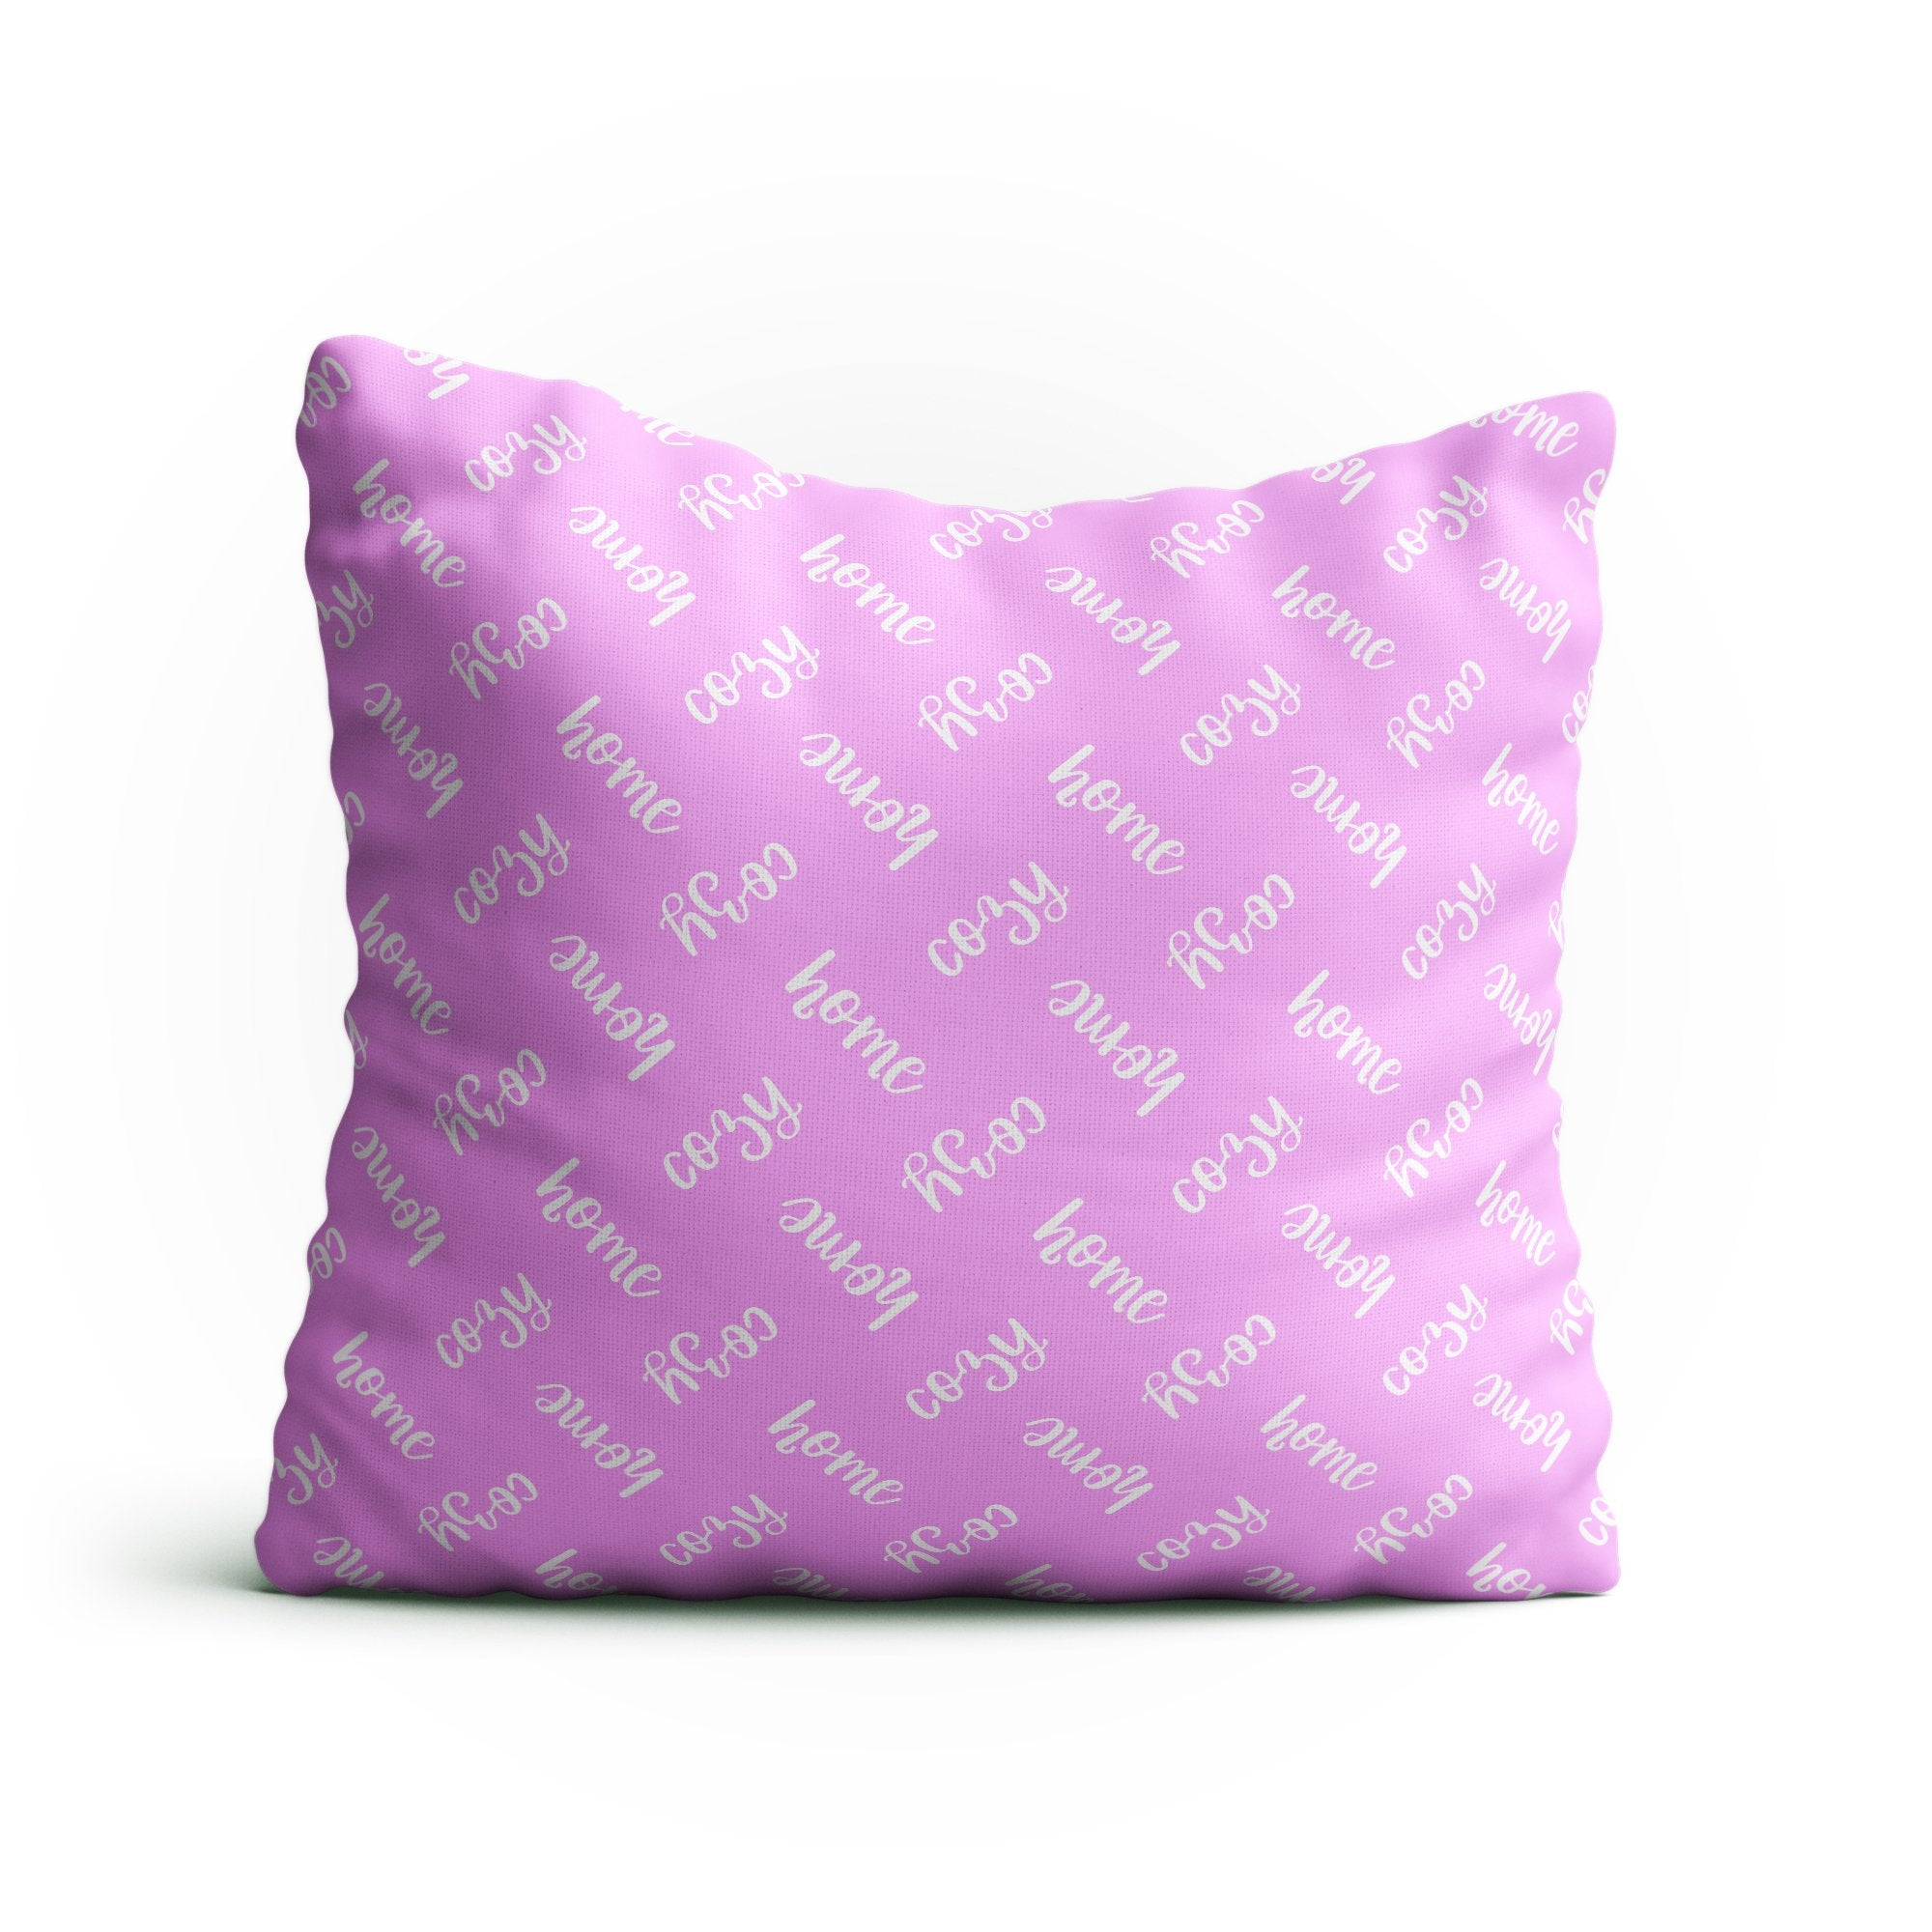 "Throw Pillow -""Cozy Home"" Text Pattern Double-Sided 18x18 Square Pillow Cover with Insert for Couch, Sofa or Bed ( Baby Pink )"